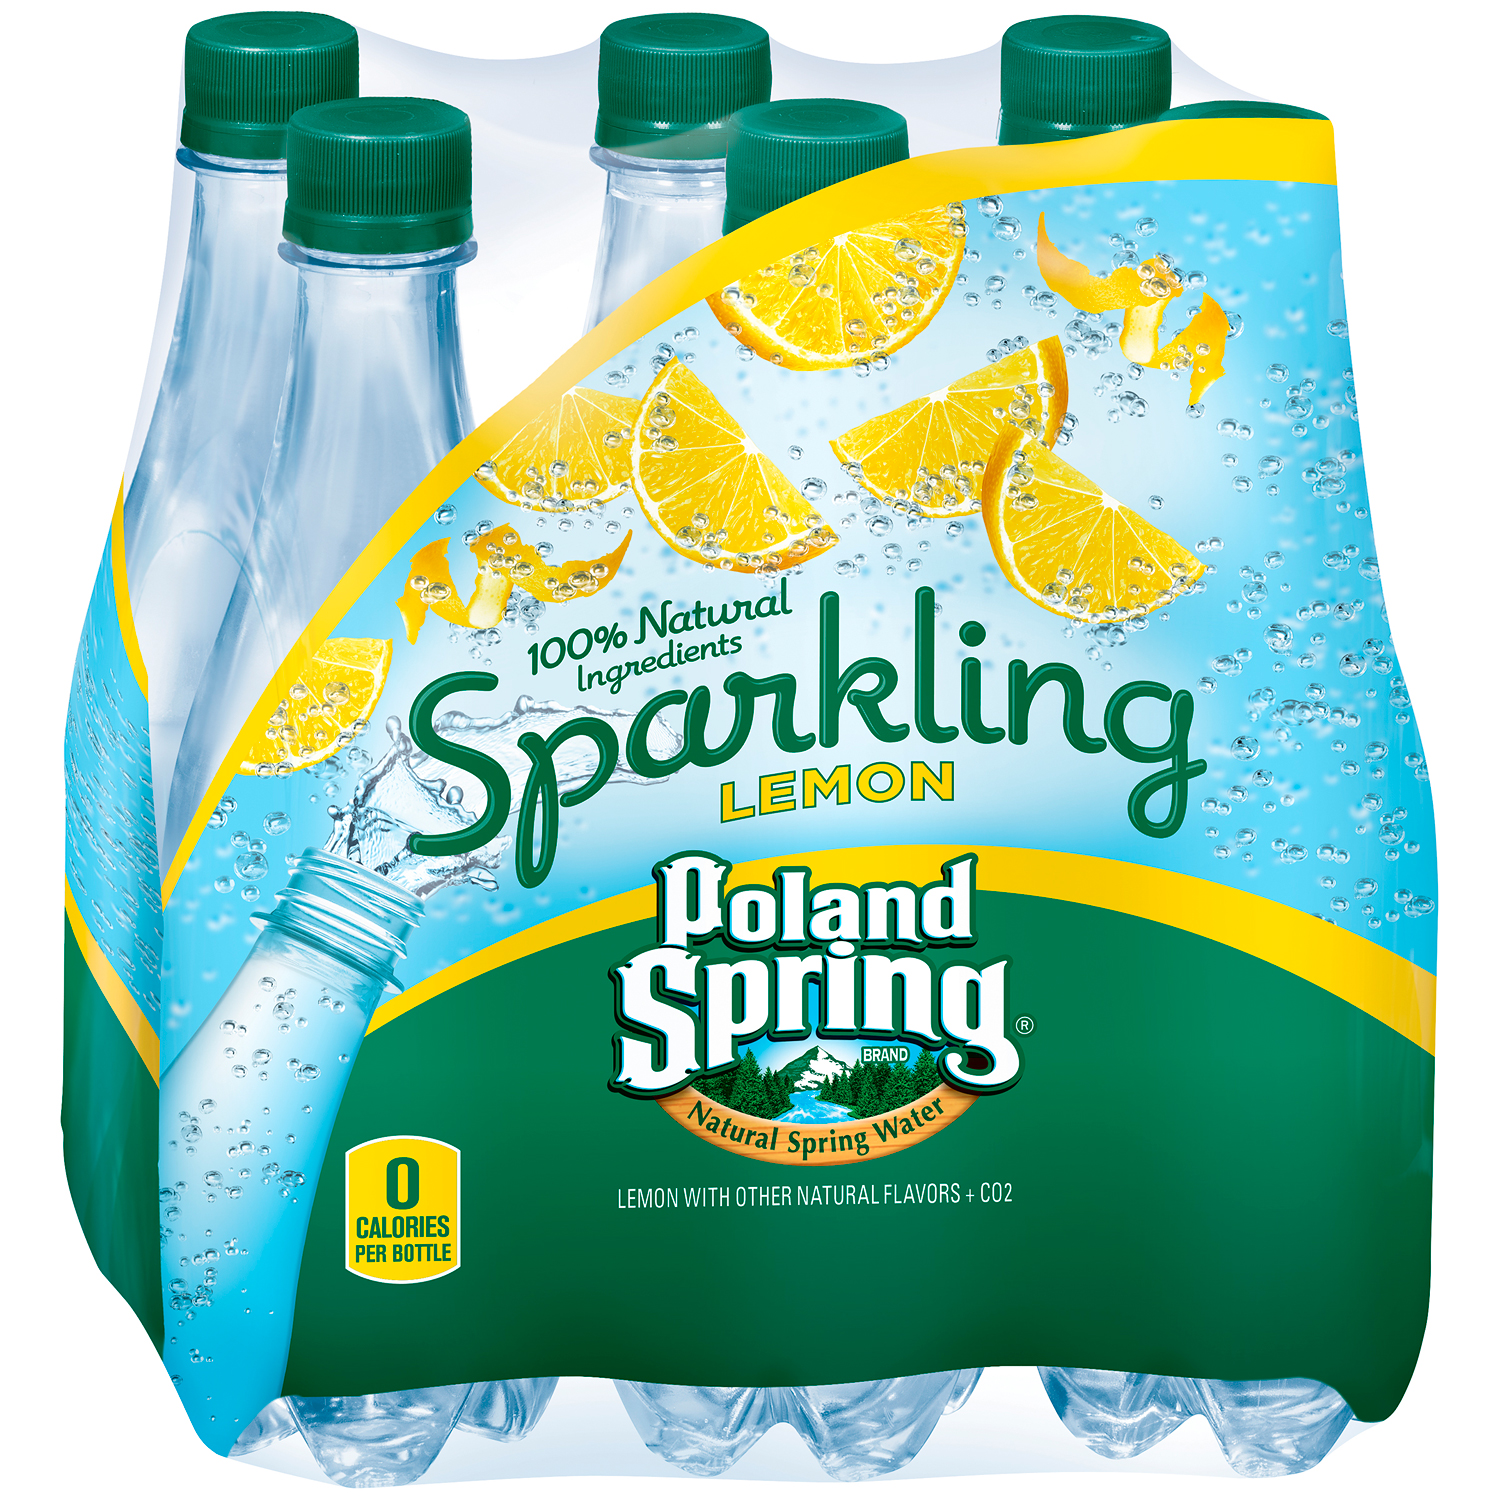 Sparkling water is still the hottest beverage among millennials